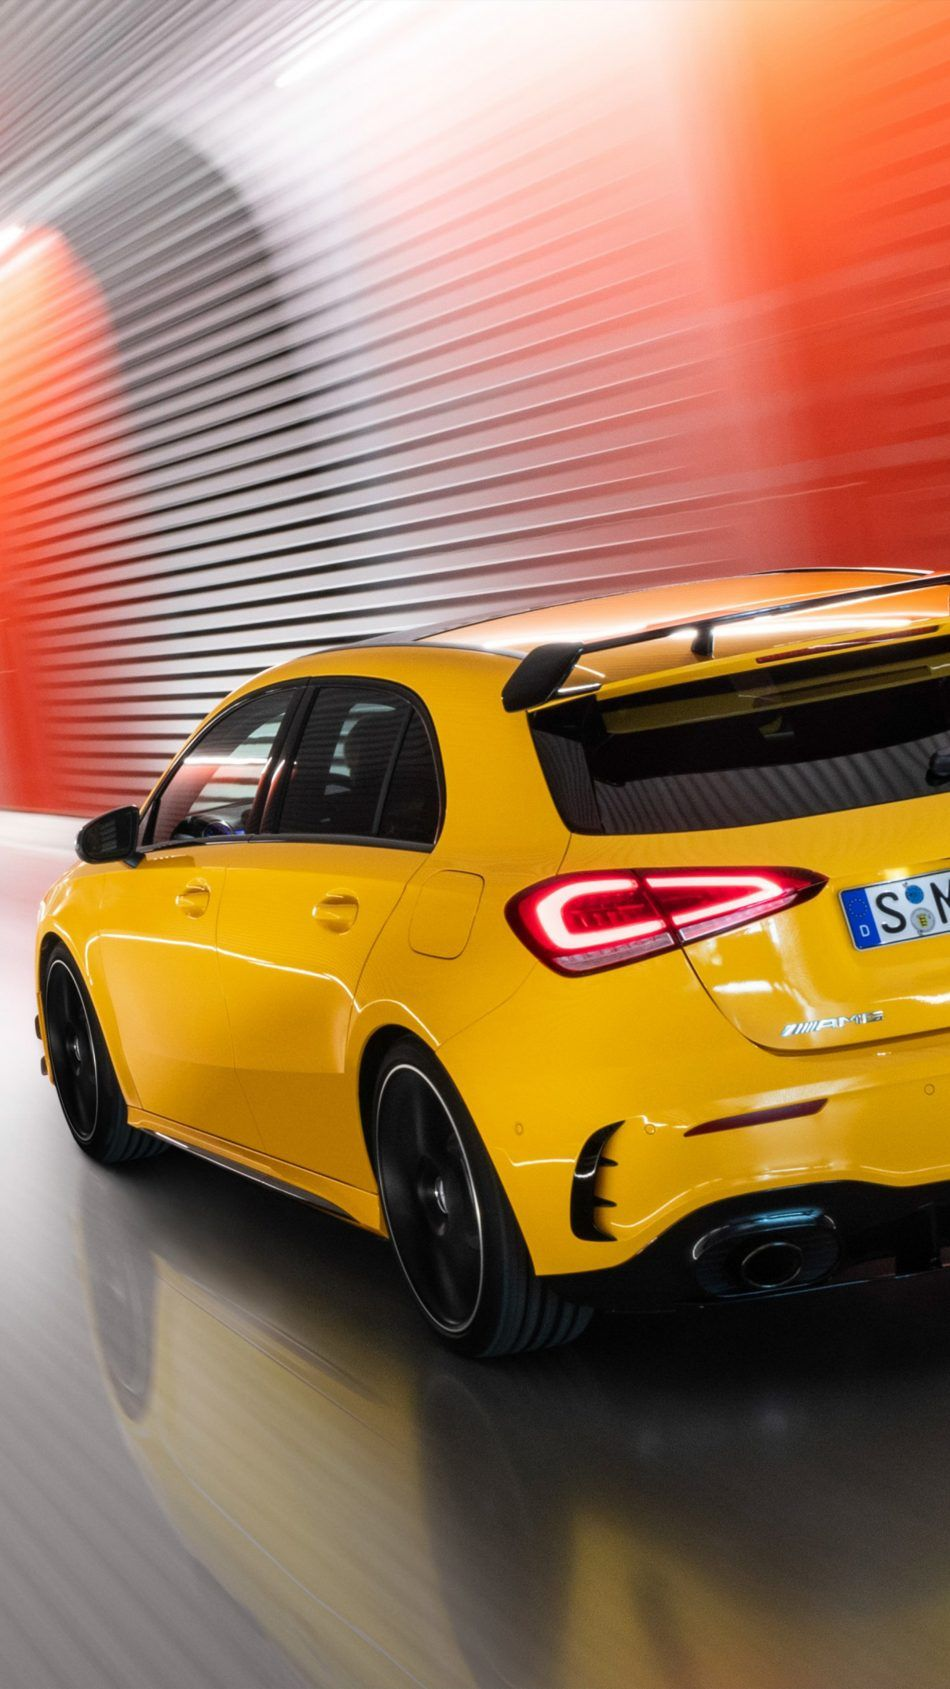 Mercedes Benz A35 Amg 4matic 4k Ultra Hd Mobile Wallpaper With